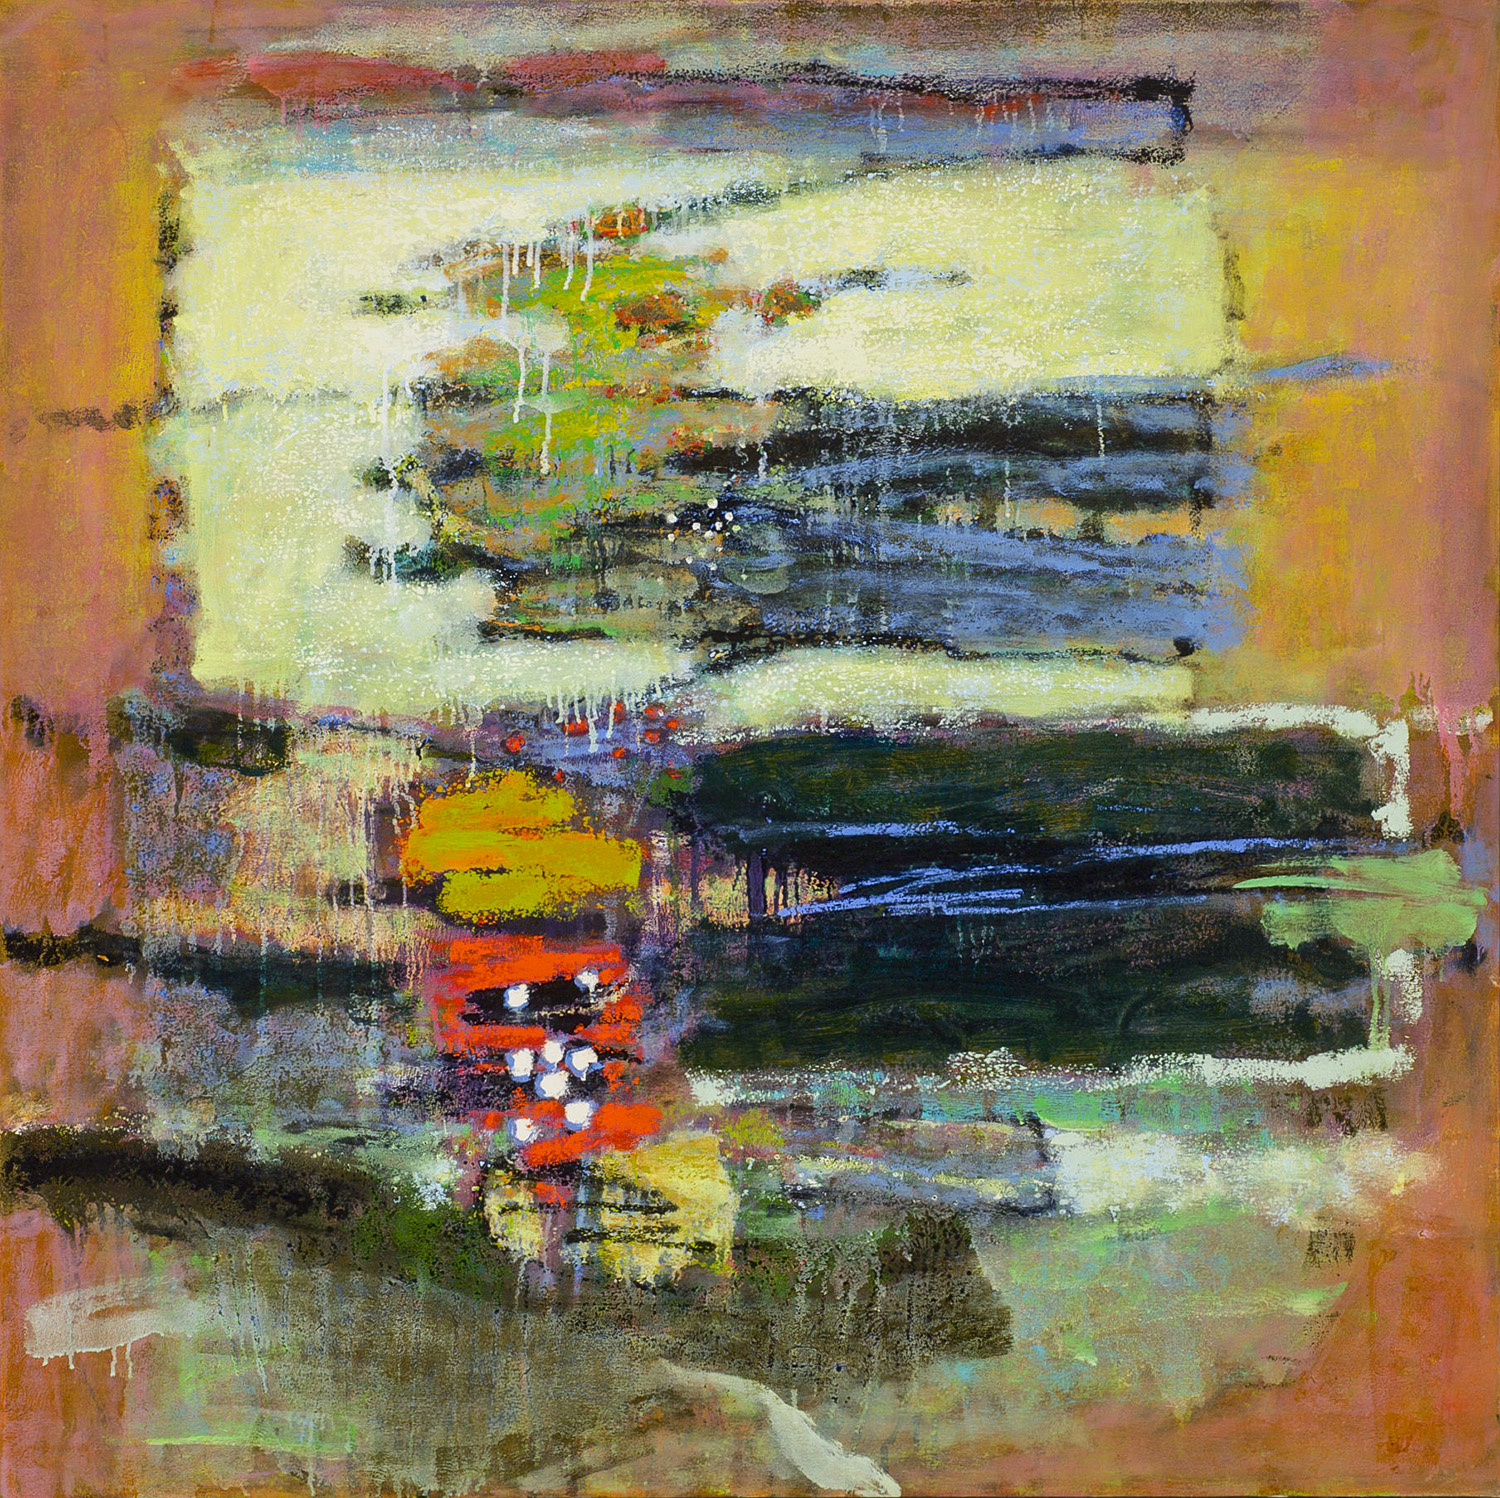 Relative Densities  | oil on canvas | 48 x 48"